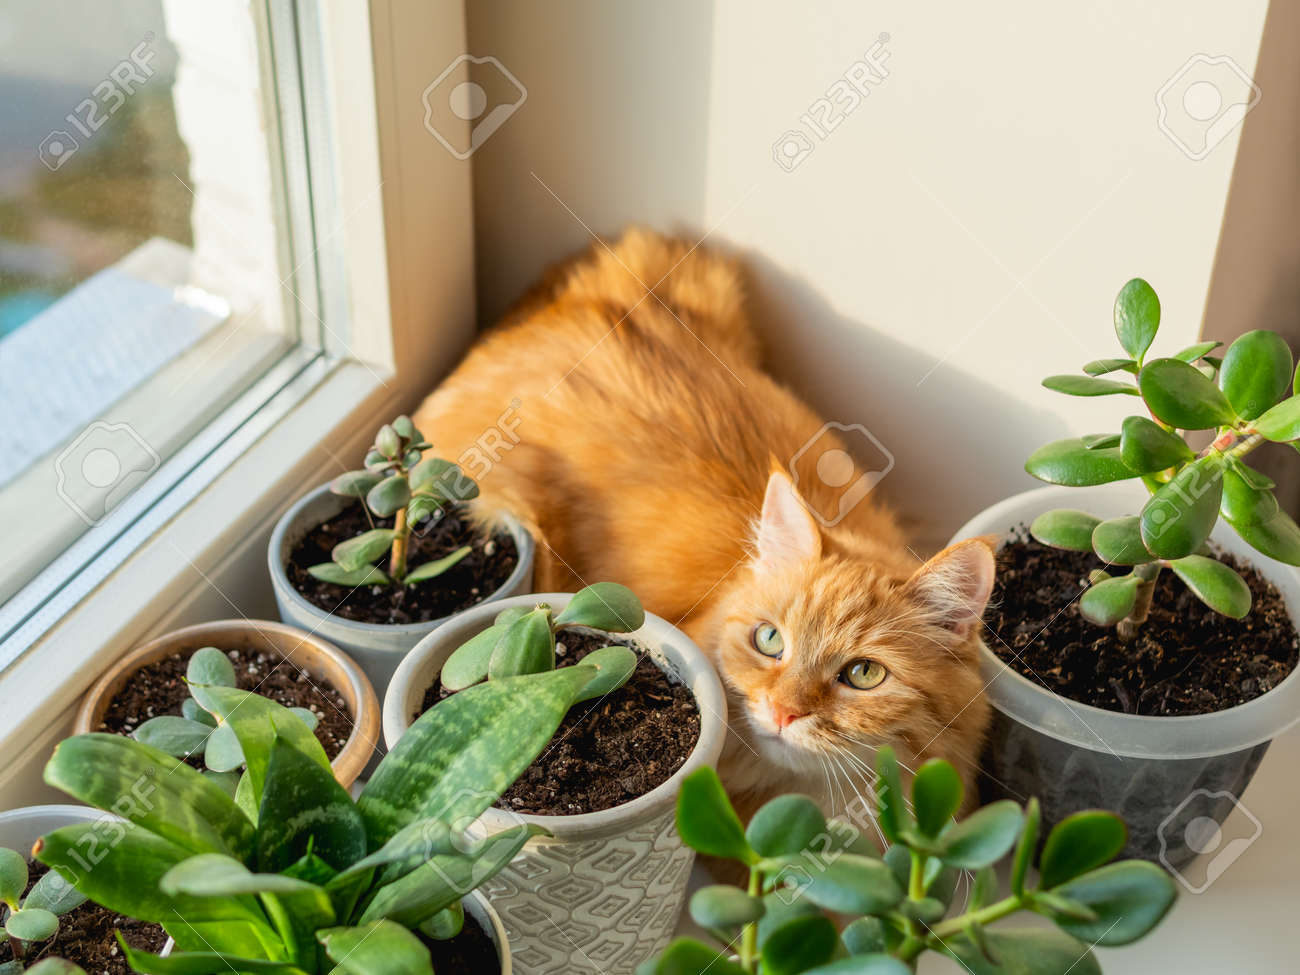 Cute ginger cat hiding on window sill among flower pots with houseplants. Fluffy domestic animal near succulent Crassula plants. Cozy home lit with sunlight. - 172806596